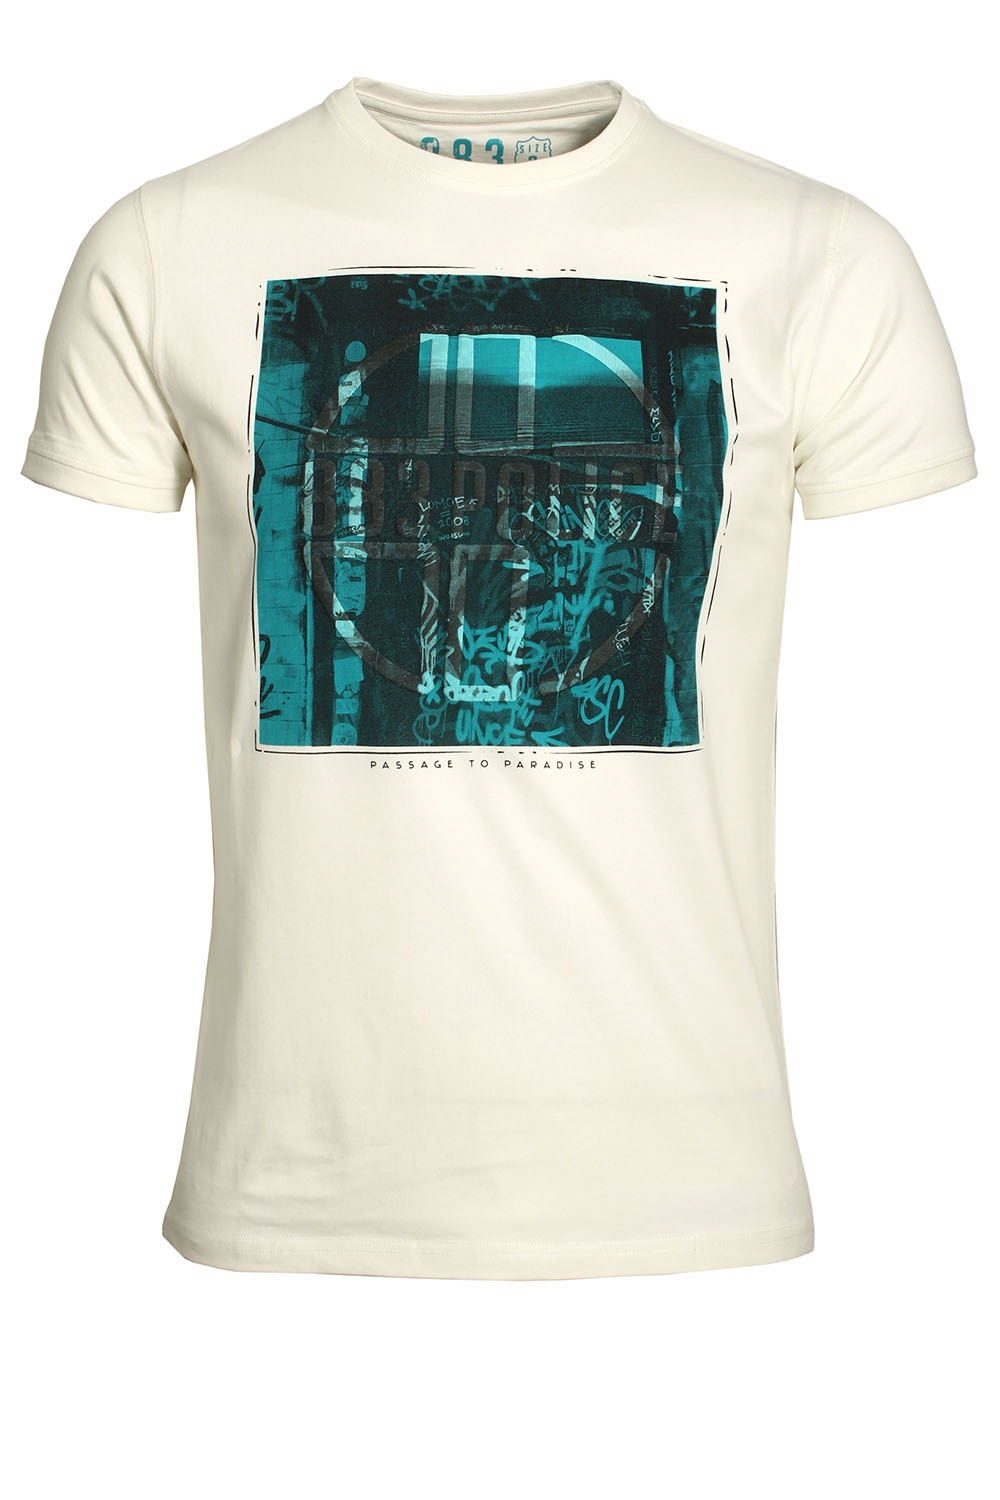 883 police pada graphic print t shirt shop 883 police t for Graphic print t shirts